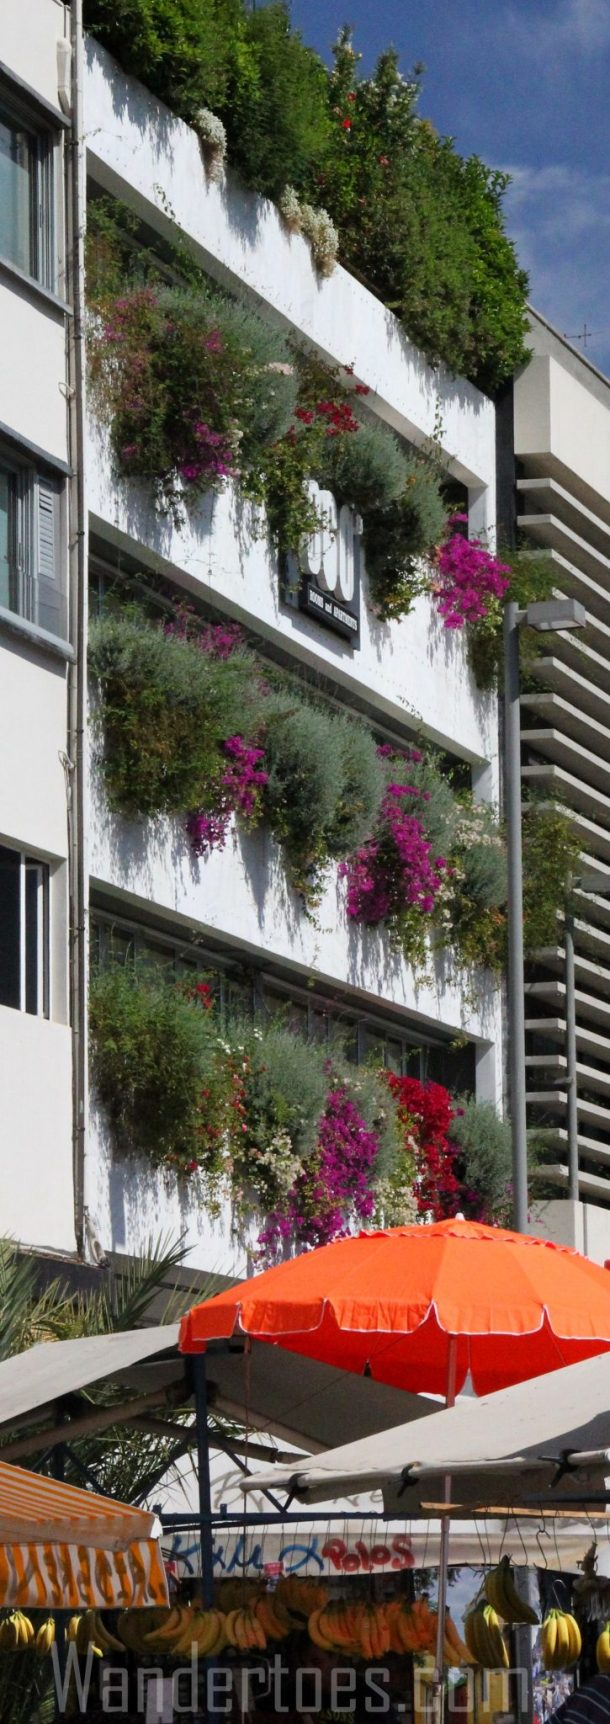 Athens Flower Front Building Wandertoes